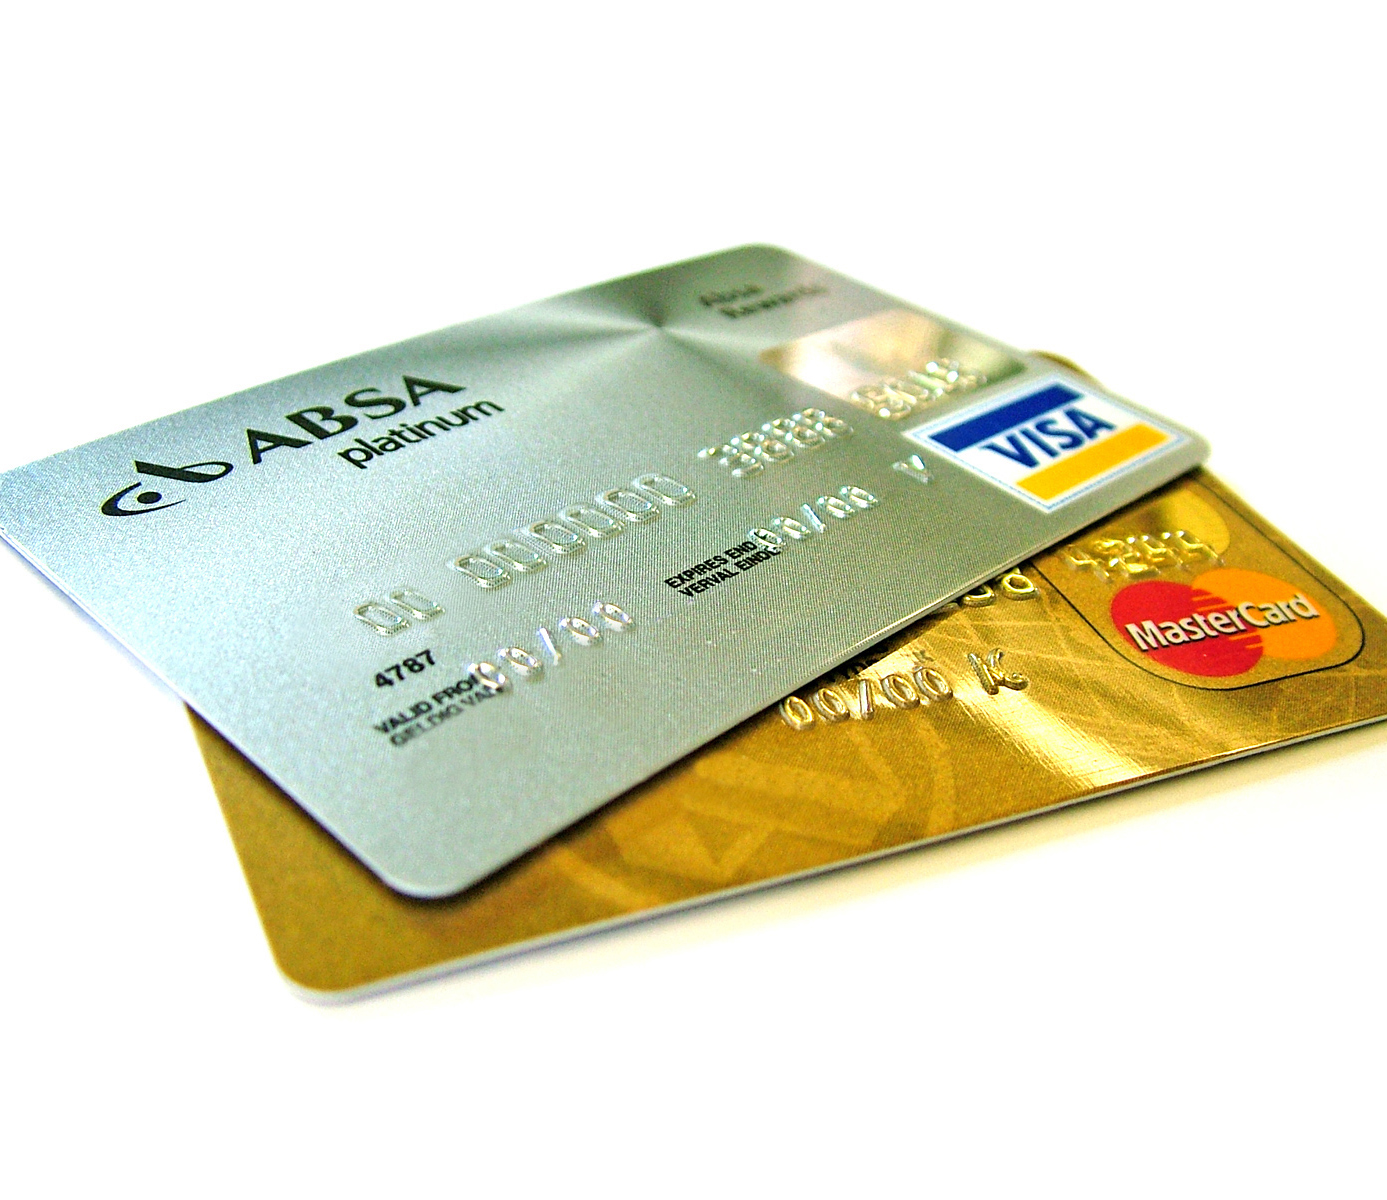 credit-card-gold-platinum-200x173.jpg